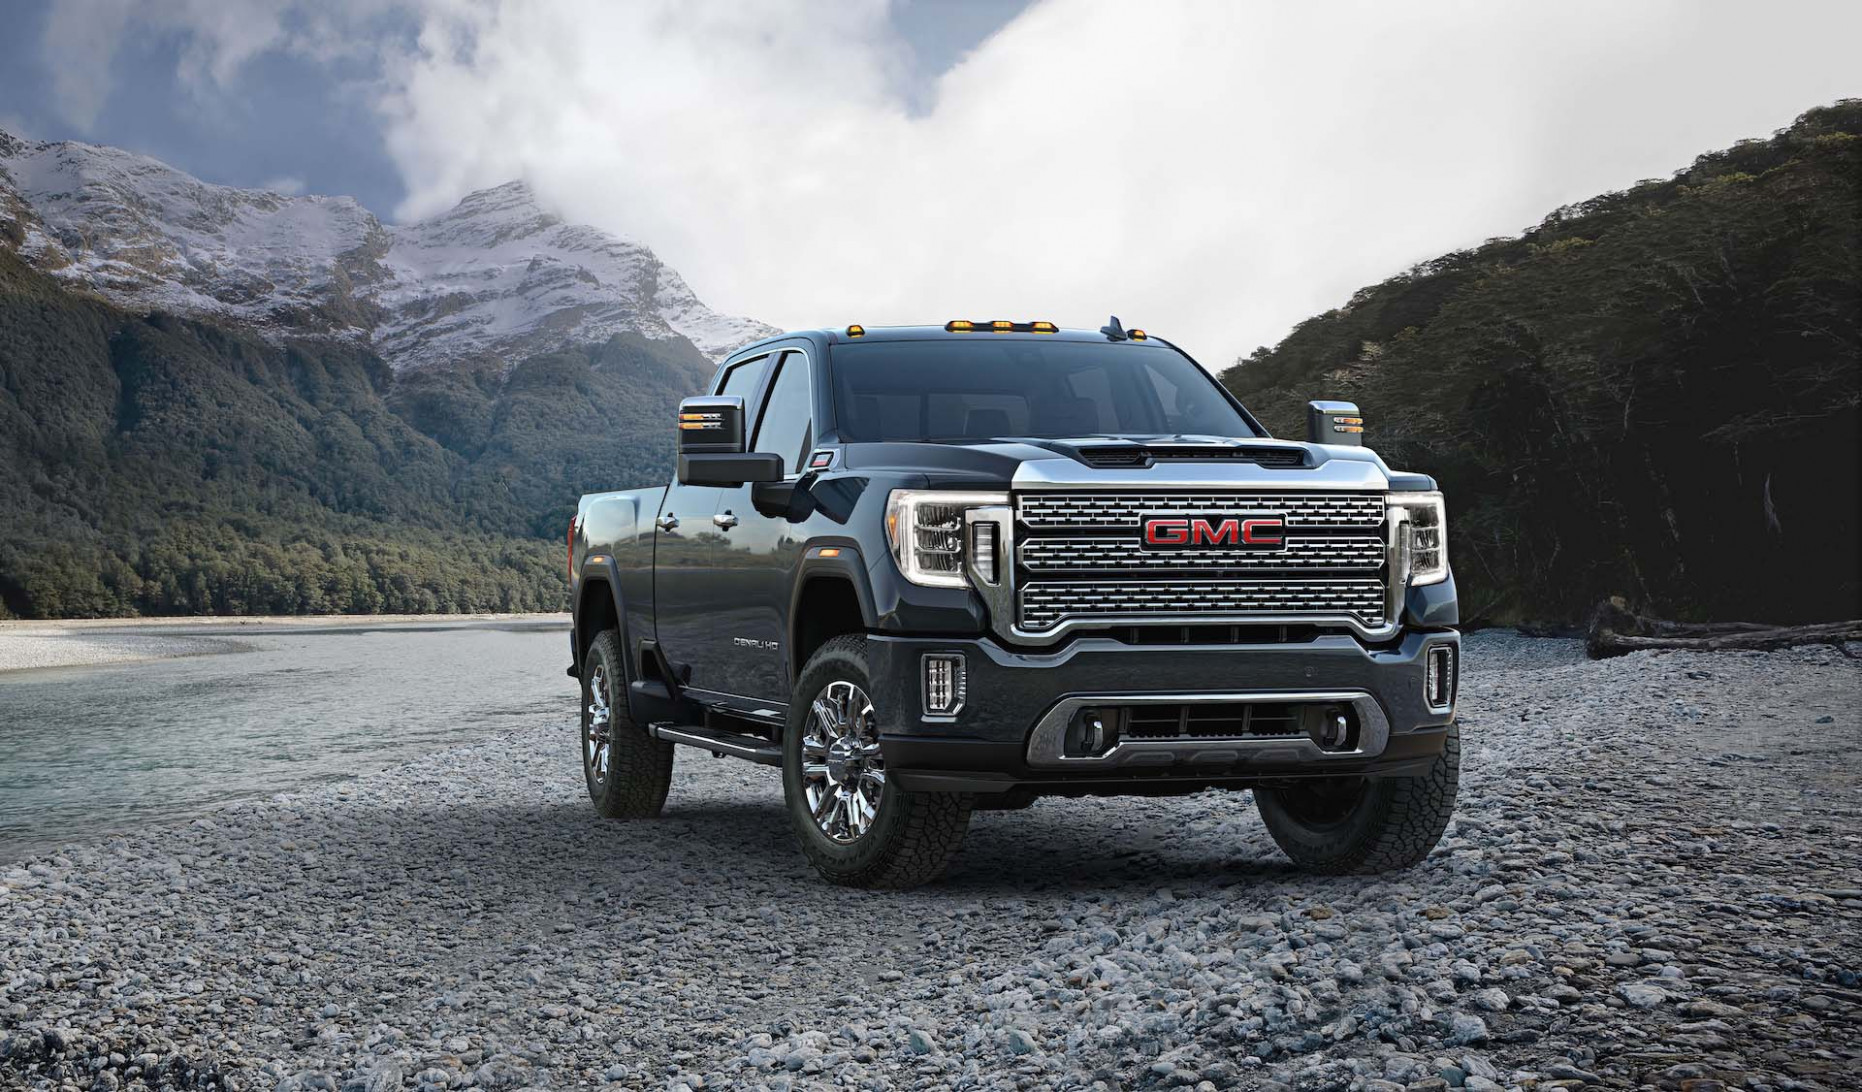 8 GMC Sierra HD hauls in lower starting price than previous model - gmc sierra 2020 price